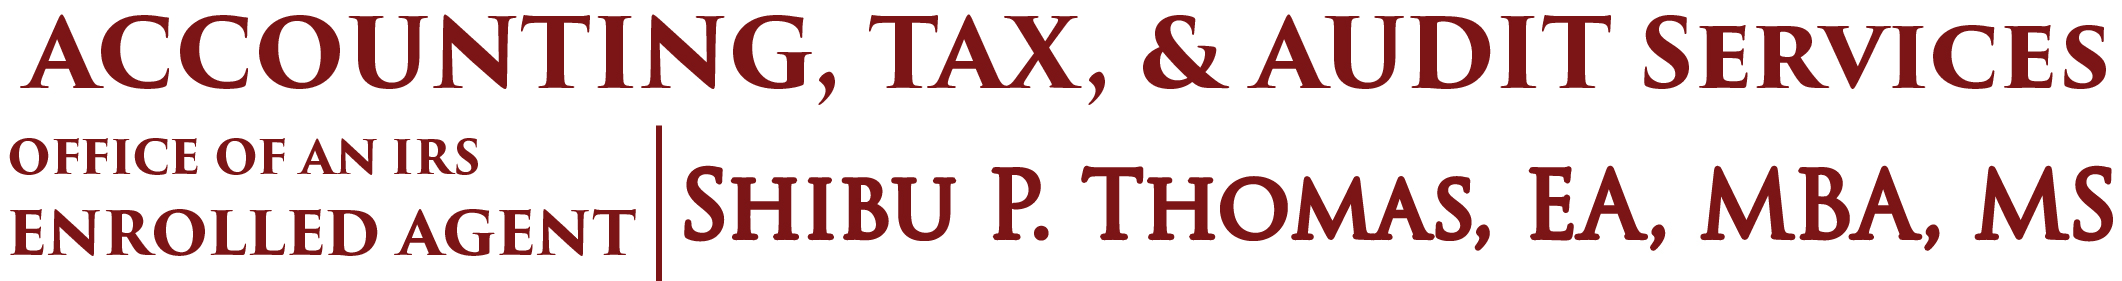 Staten Island, NY Accounting Firm | CFO Services Page | Accounting, Tax, & Audit Services Shibu P. Thomas, EA, MBA, MS